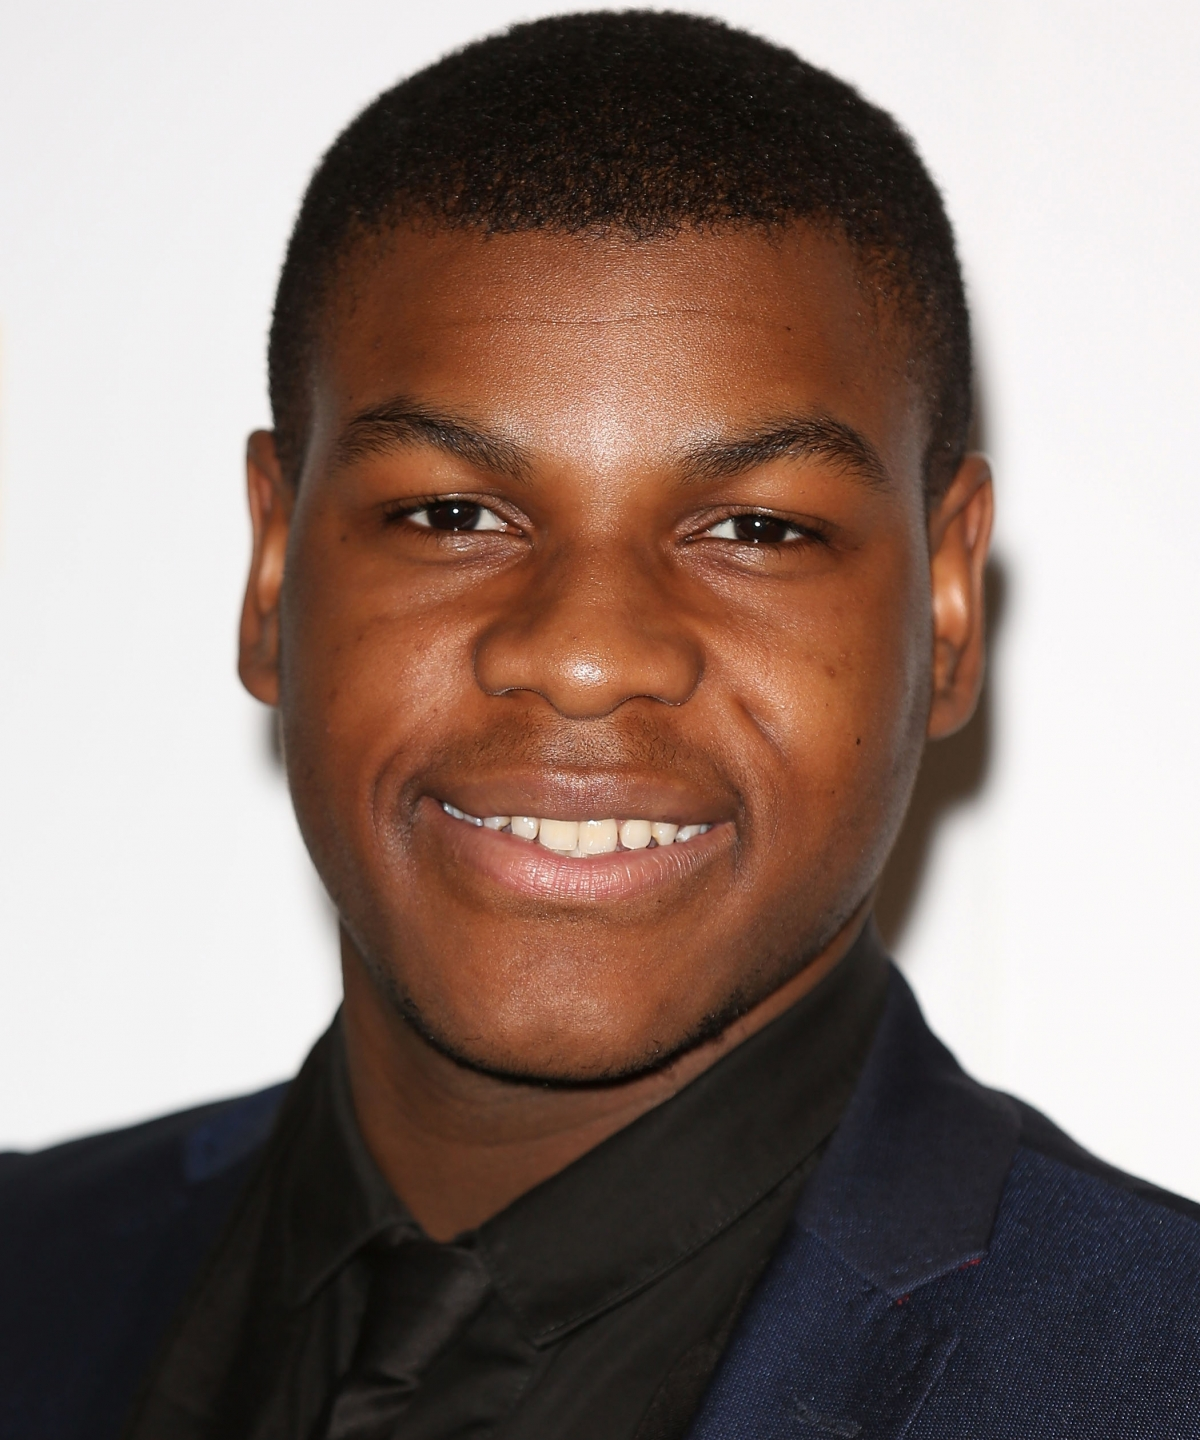 Star Wars 7 Casting Who Are John Boyega And Daisy Ridley